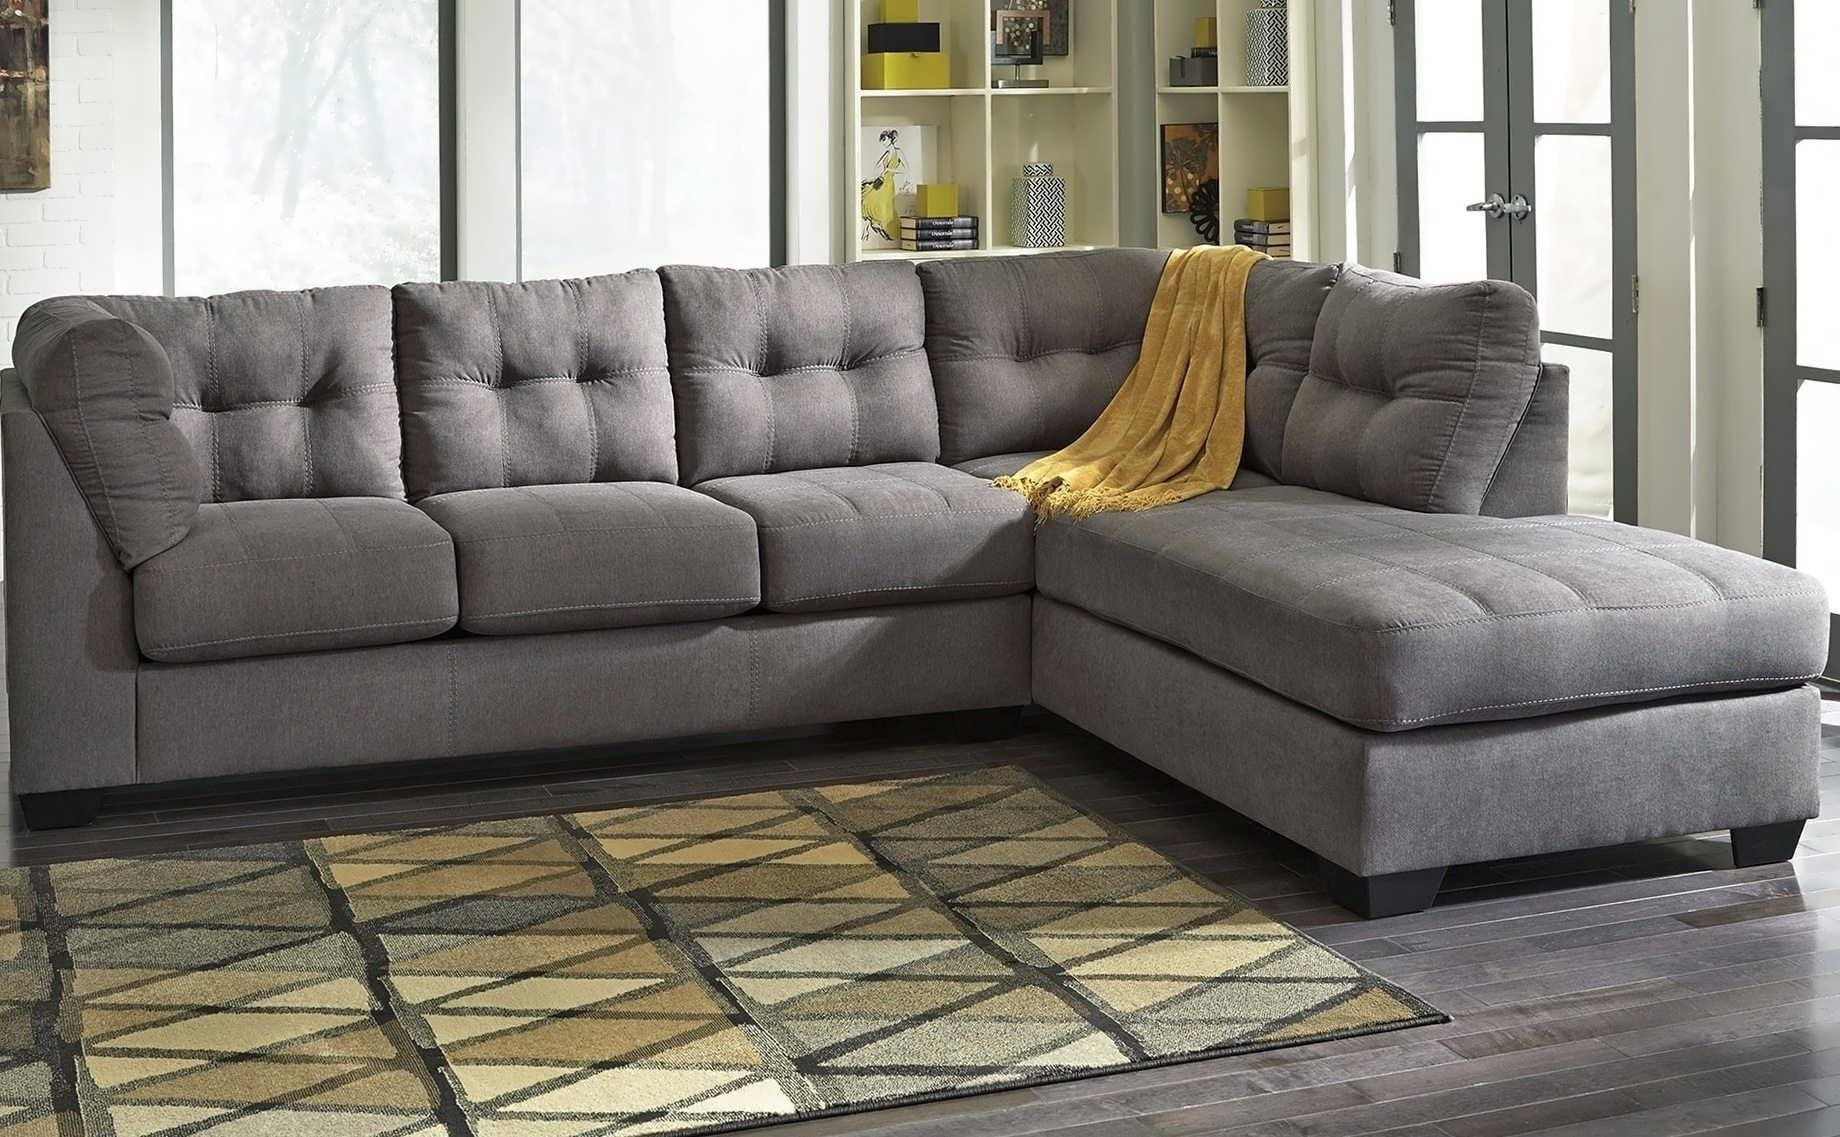 2017 Sofa : Gray Sectional Sleeper Sectional Oversized Sectionals Grey With Grey Chaise Sectionals (View 2 of 15)